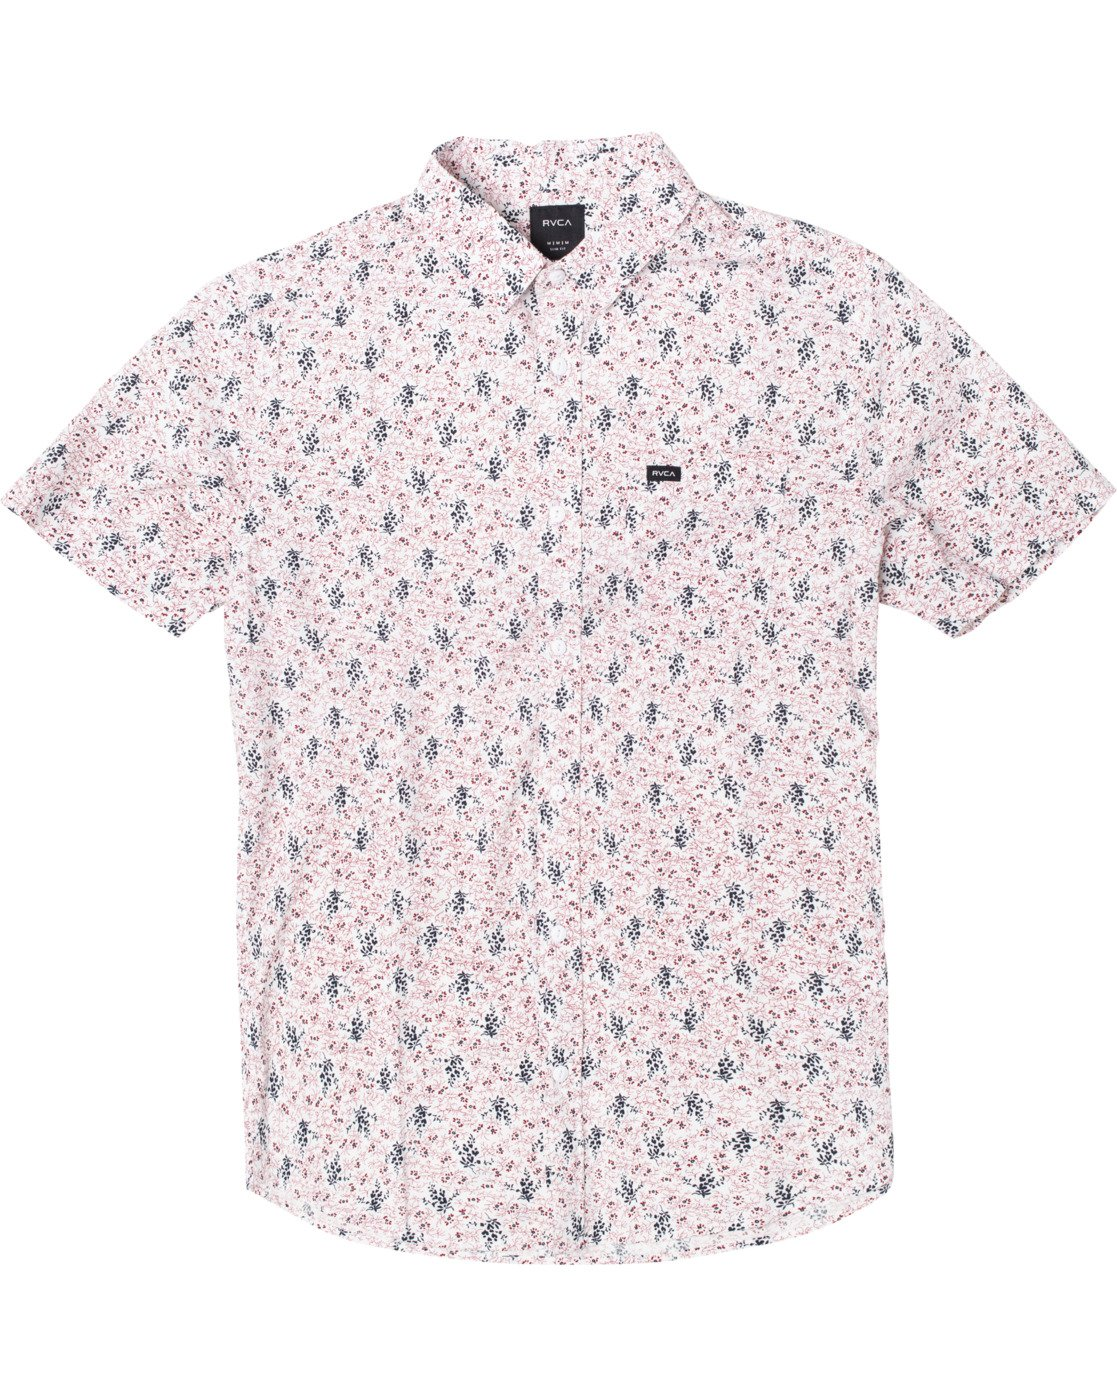 0 MONKBERRY FLORAL SHORT SLEEVE SHIRT White M5163RMB RVCA